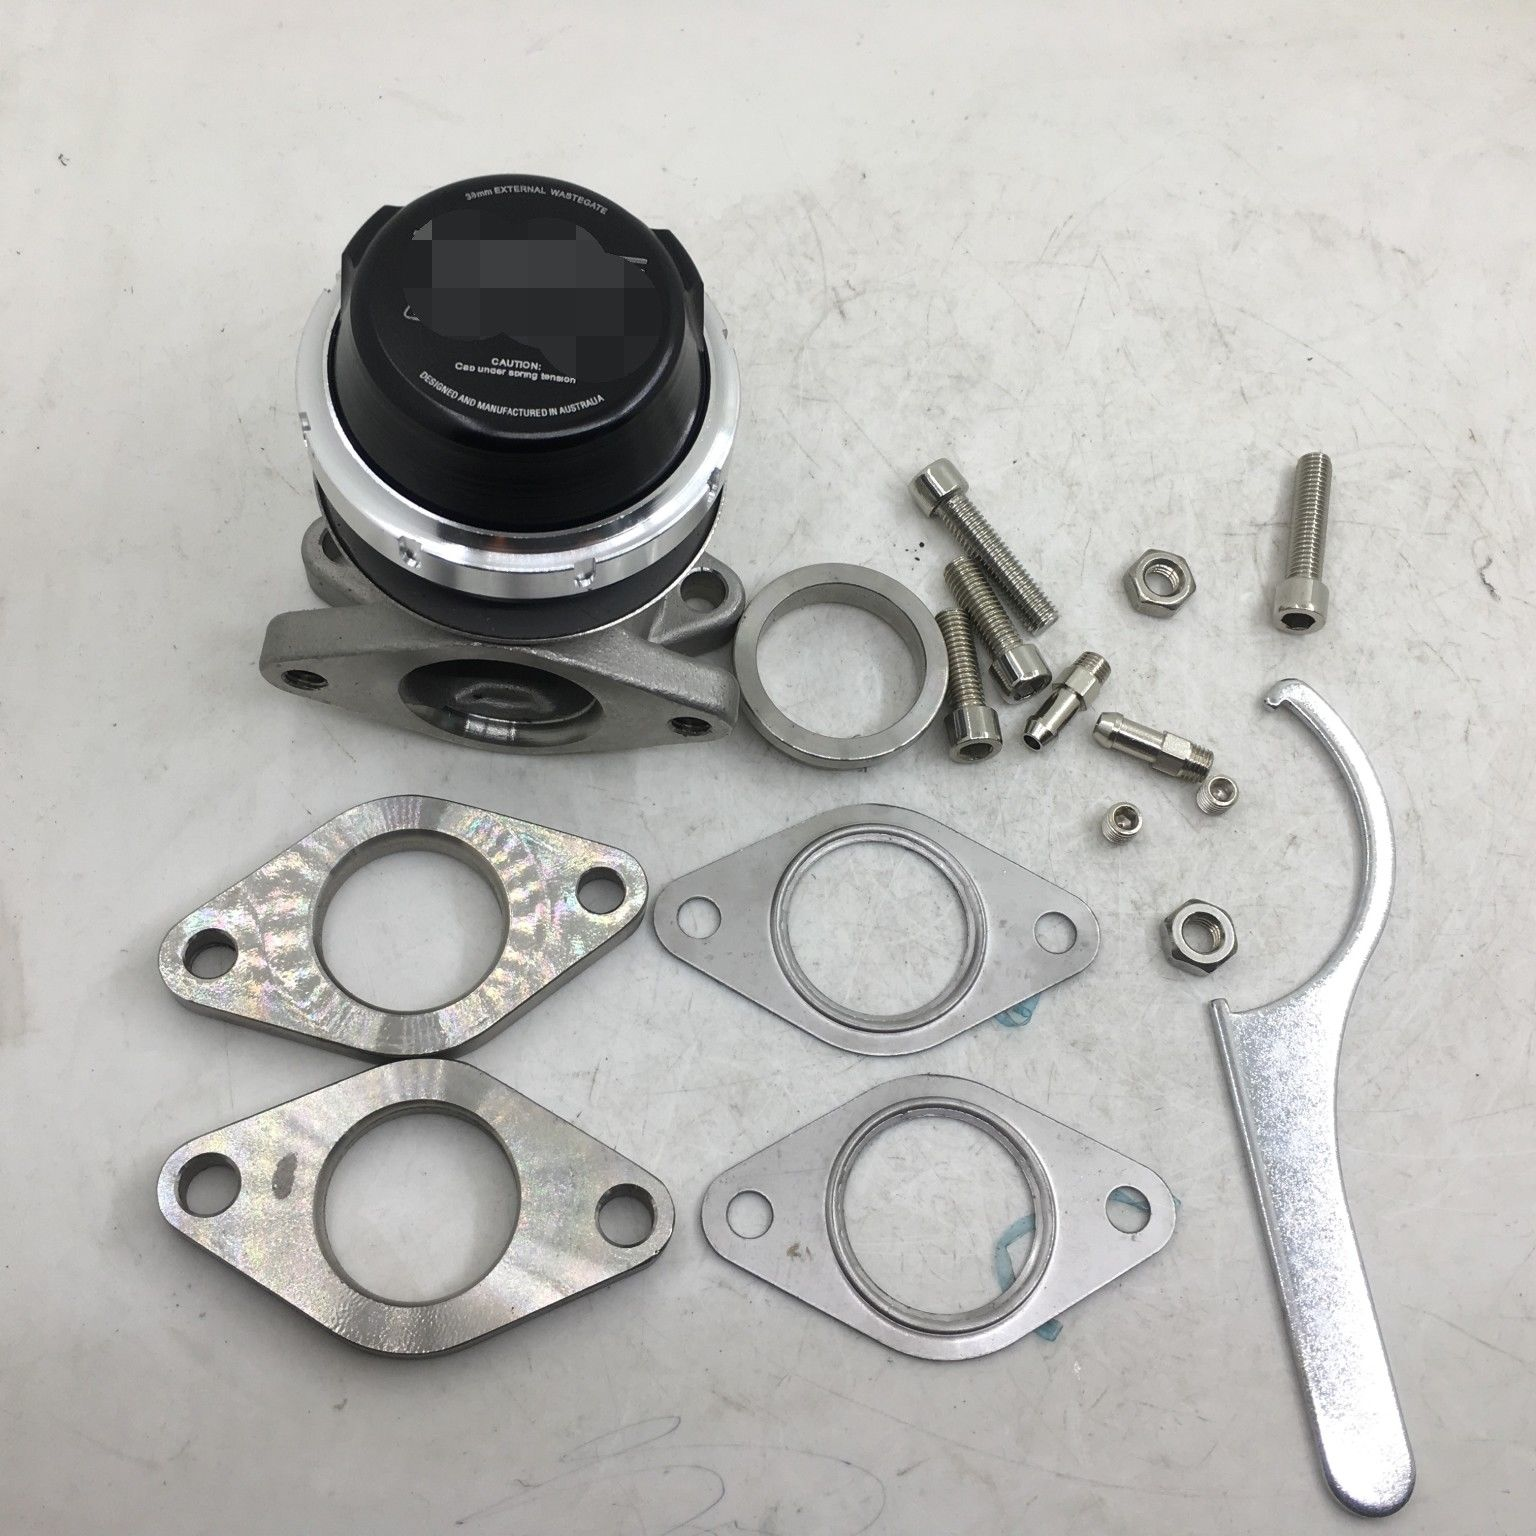 Turbo Smart model 38mm <strong>External</strong> <strong>Wastegate</strong> Turbo WG38 7 PSI Spring Black Boost